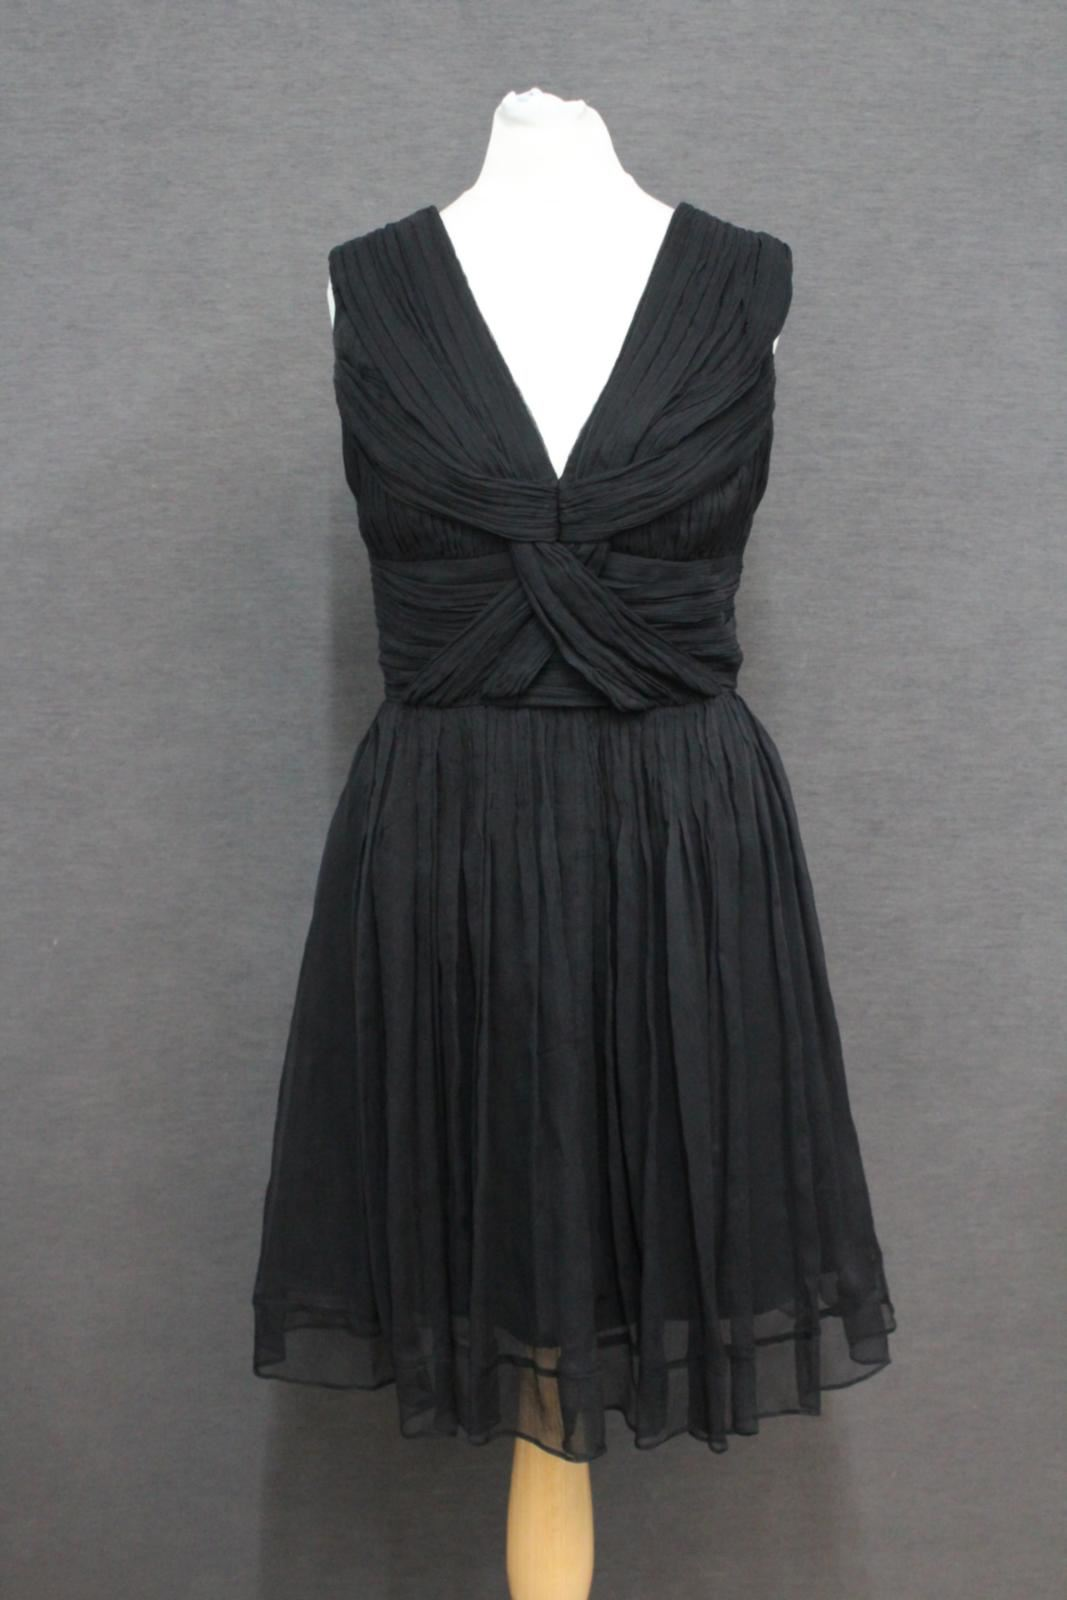 BURBERRY-Ladies-Black-Sleeveless-Zip-Up-V-Neck-Maxi-Mini-Dress-EU38-UK10